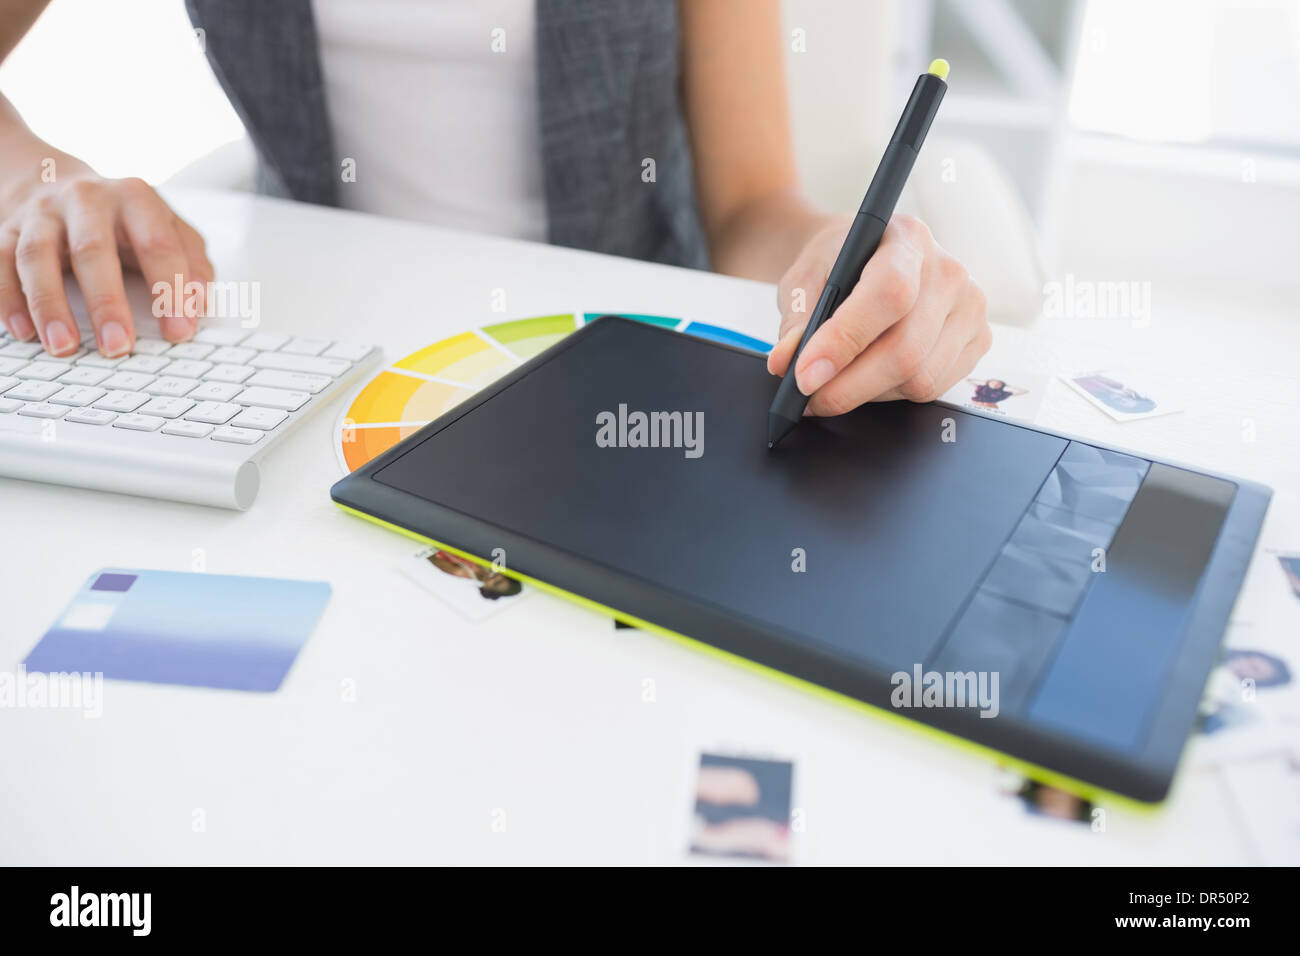 Female photo editor using graphics tablet Stock Photo